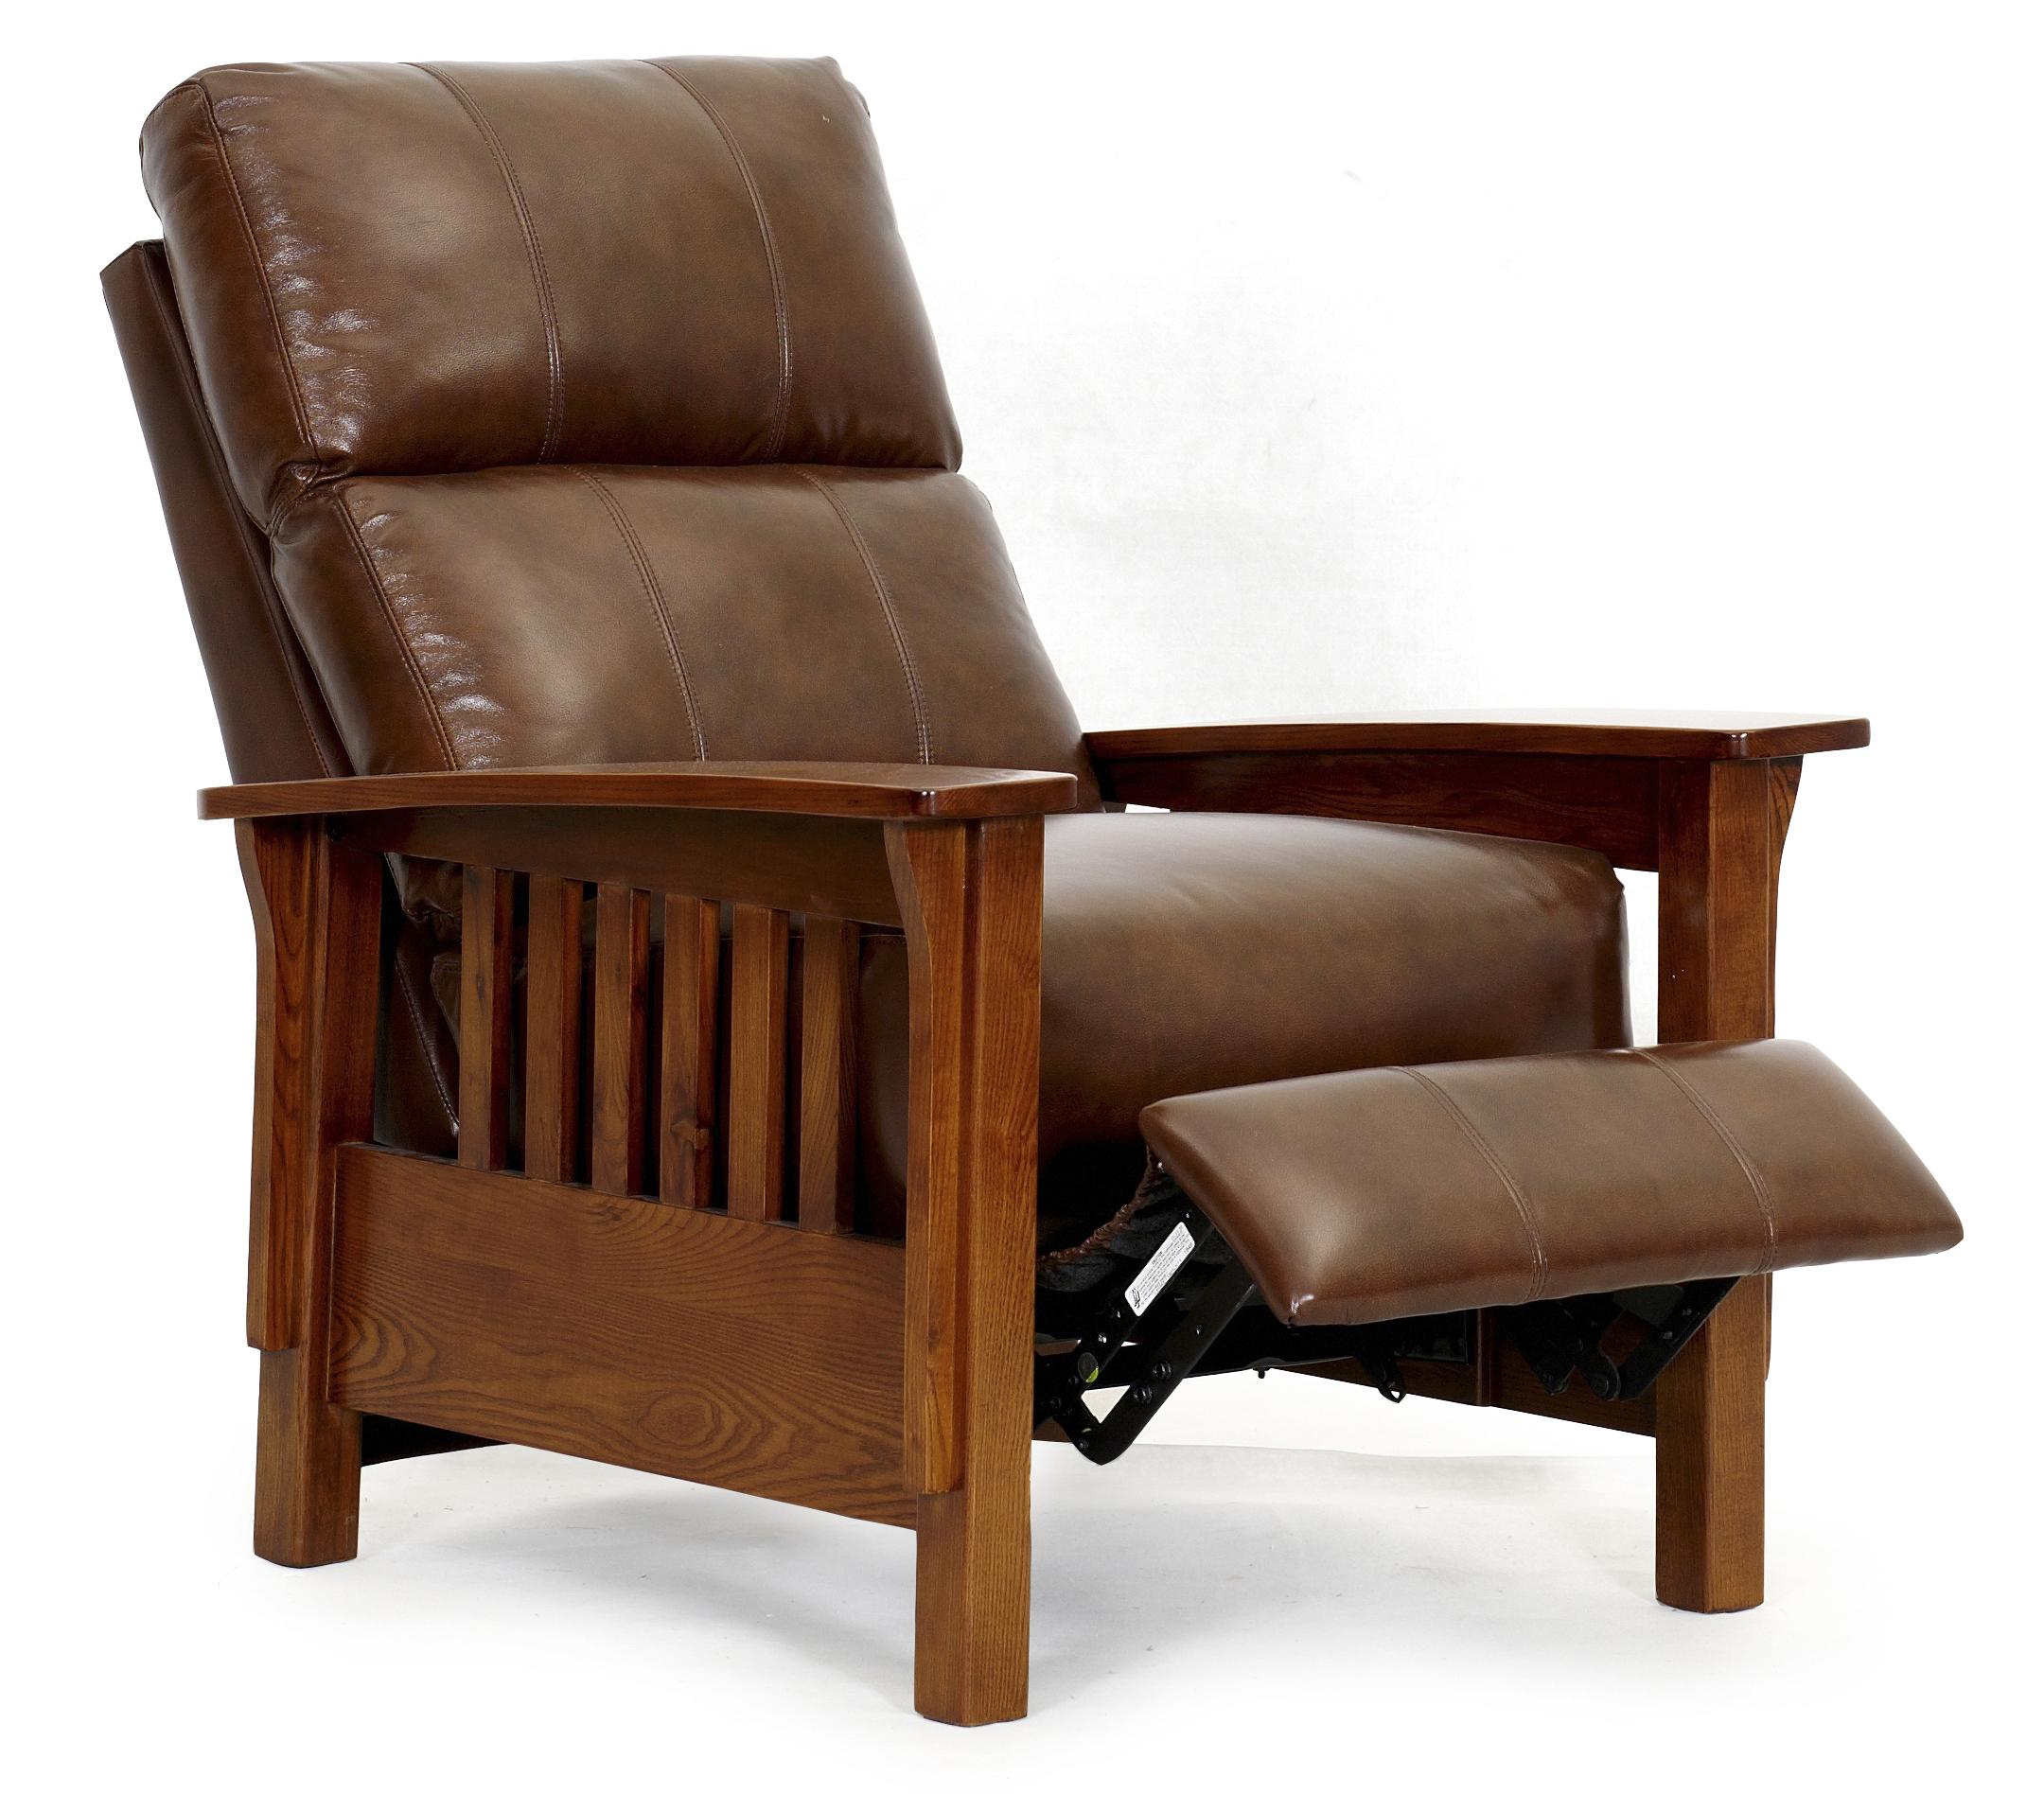 Synergy Home Furnishings 601  Three Way Recliner - Item Number: 601-86